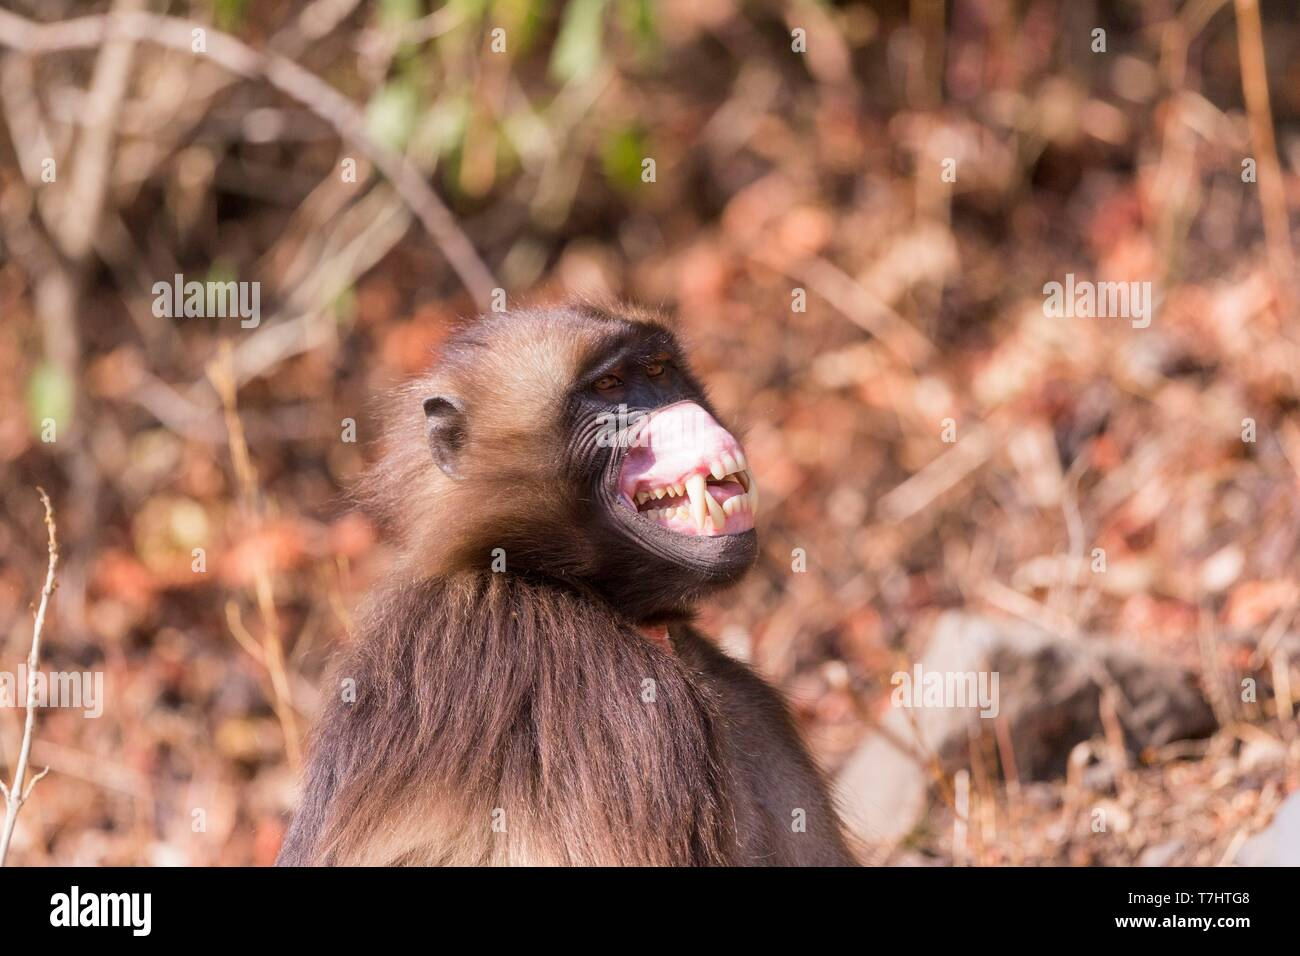 Ethiopia, Rift Valley, Debre Libanos, Gelada or Gelada baboon (Theropithecus gelada), male in intimidation posture, roll up the chops to show a large clear spot - Stock Image